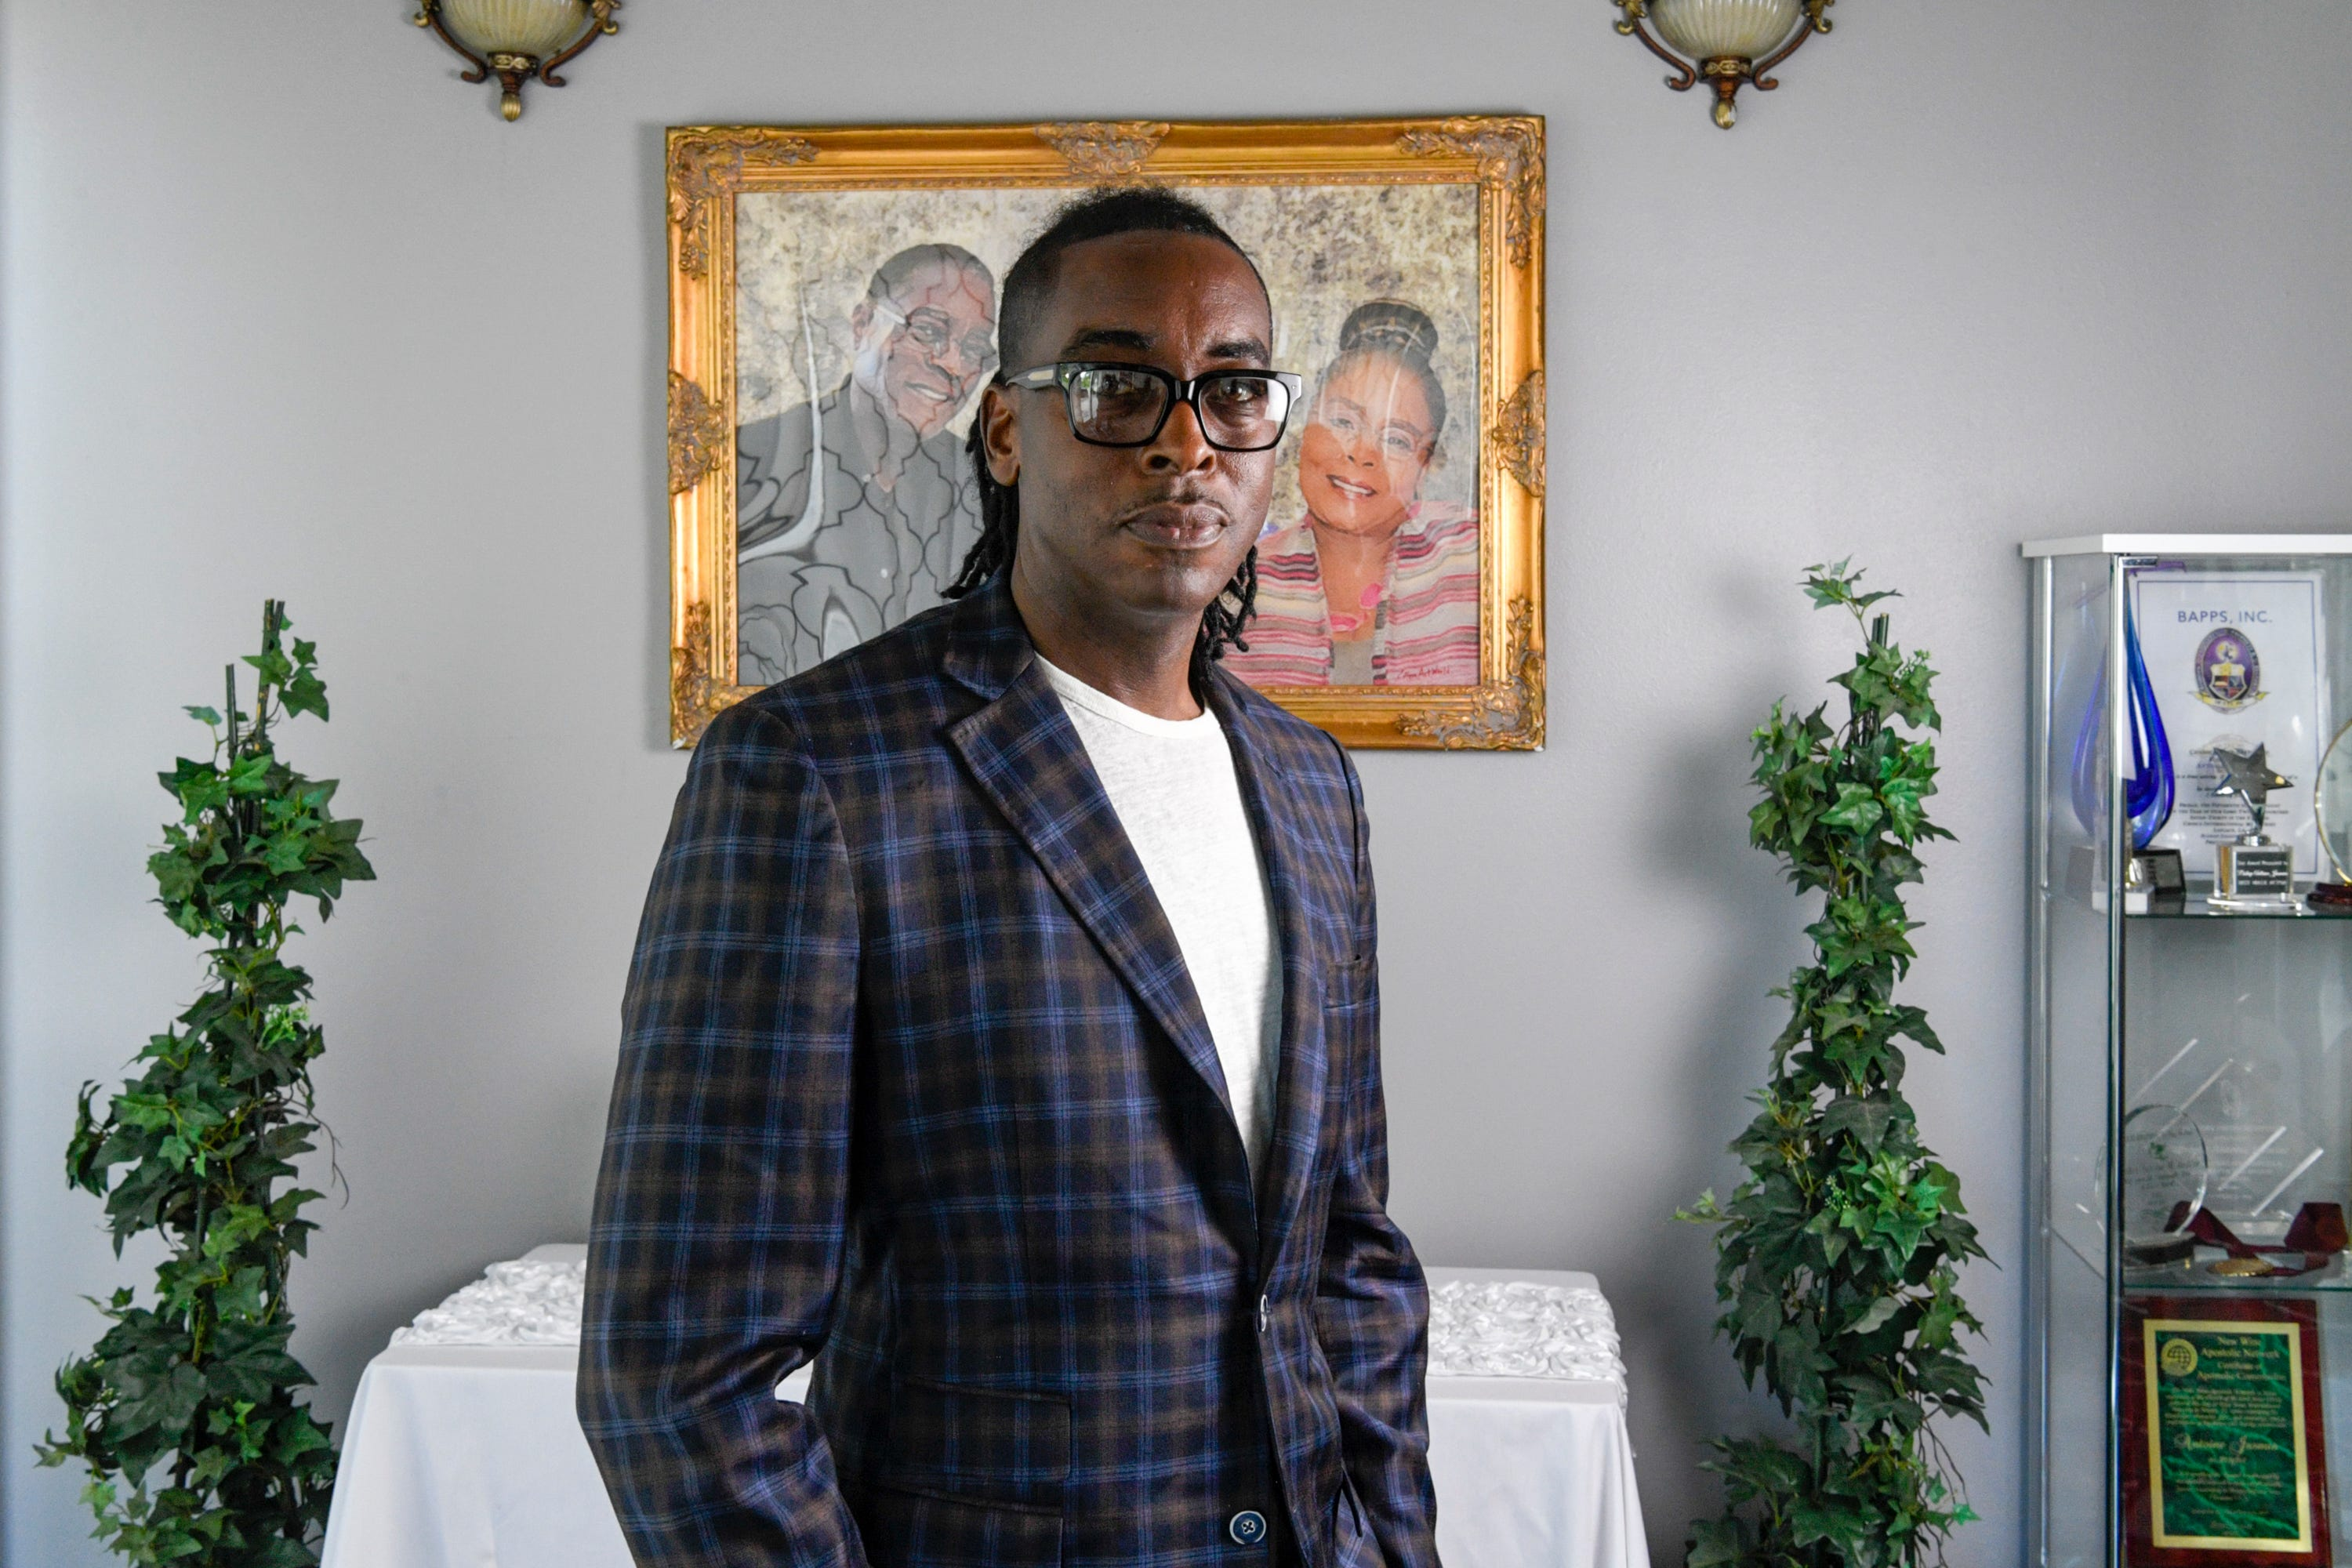 The Rev. Antoine Jasmine of Choice International Ministries poses for a portrait in front of a photo of his parents, who both lived in Reserve, La., and died four hours apart from COVID-19 complications in April.